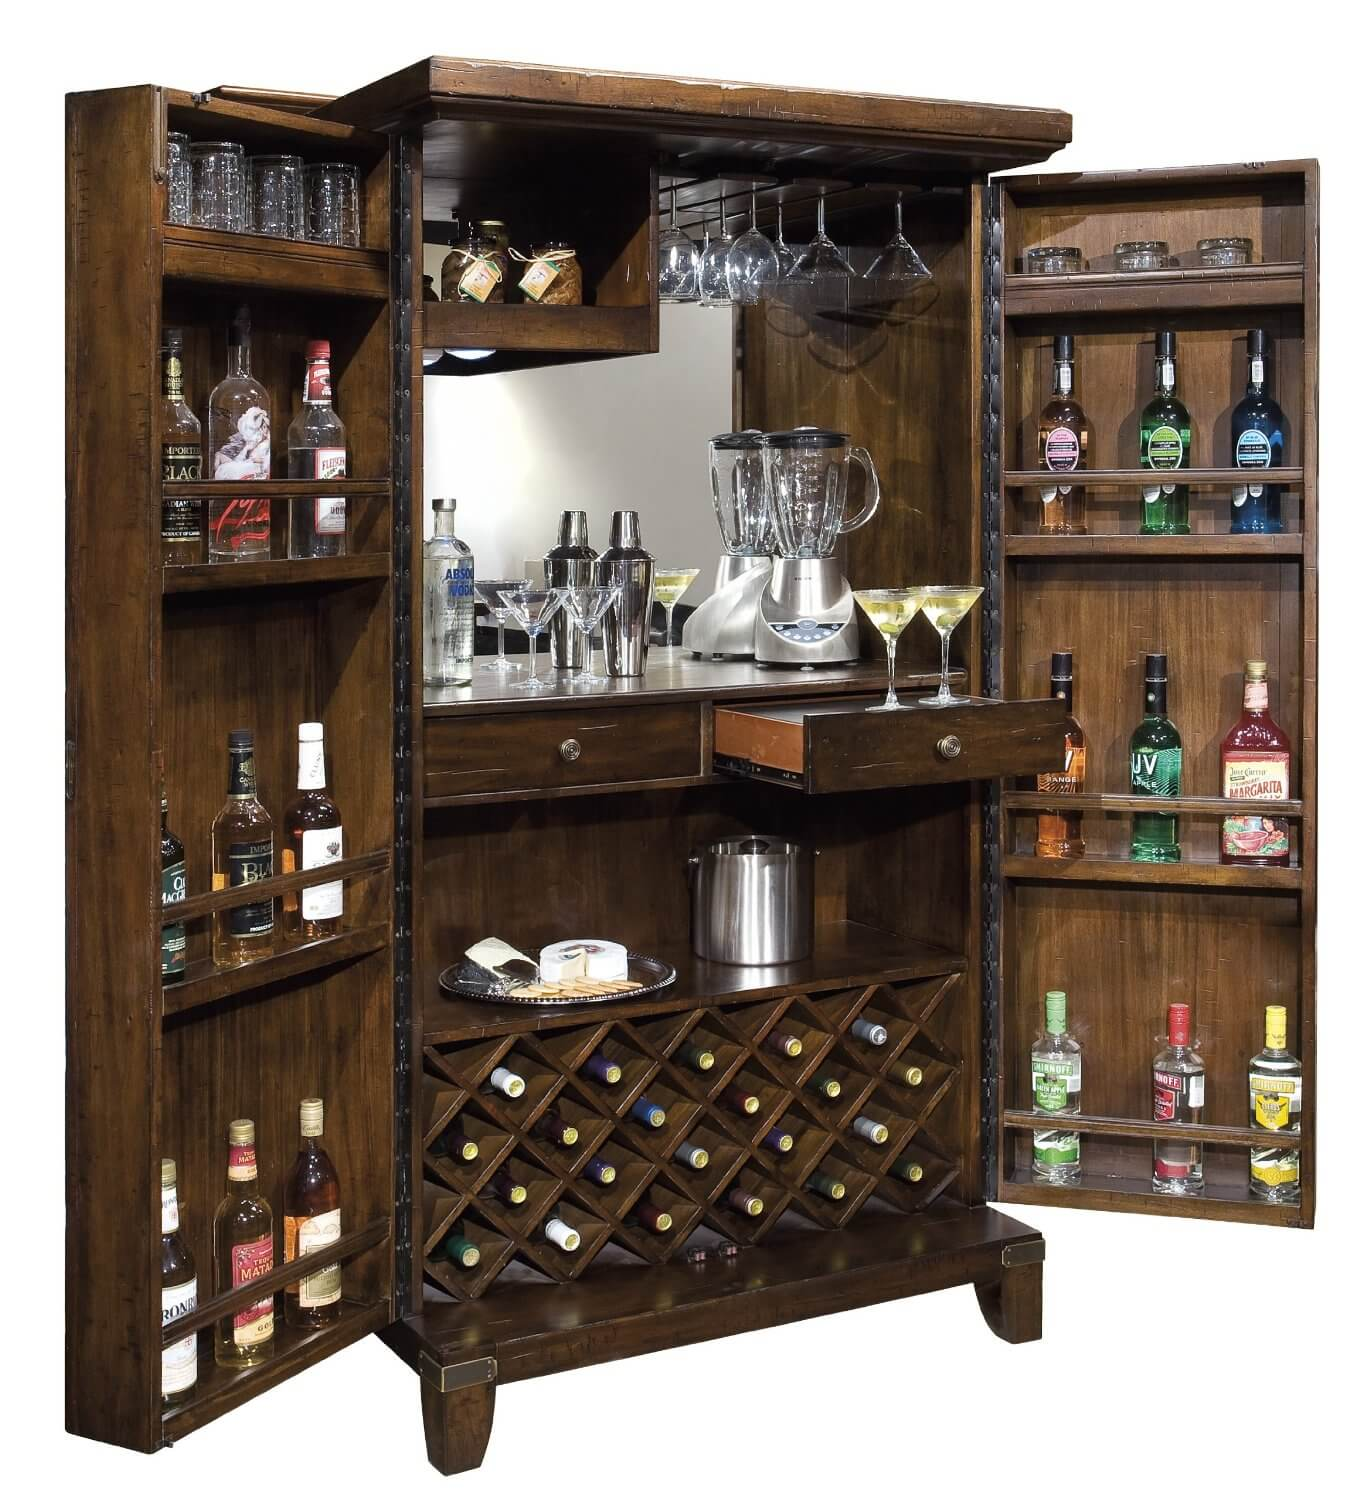 custom wine cellar furniture design home liquor and wine bar cabinet box version modern wine cellar furniture